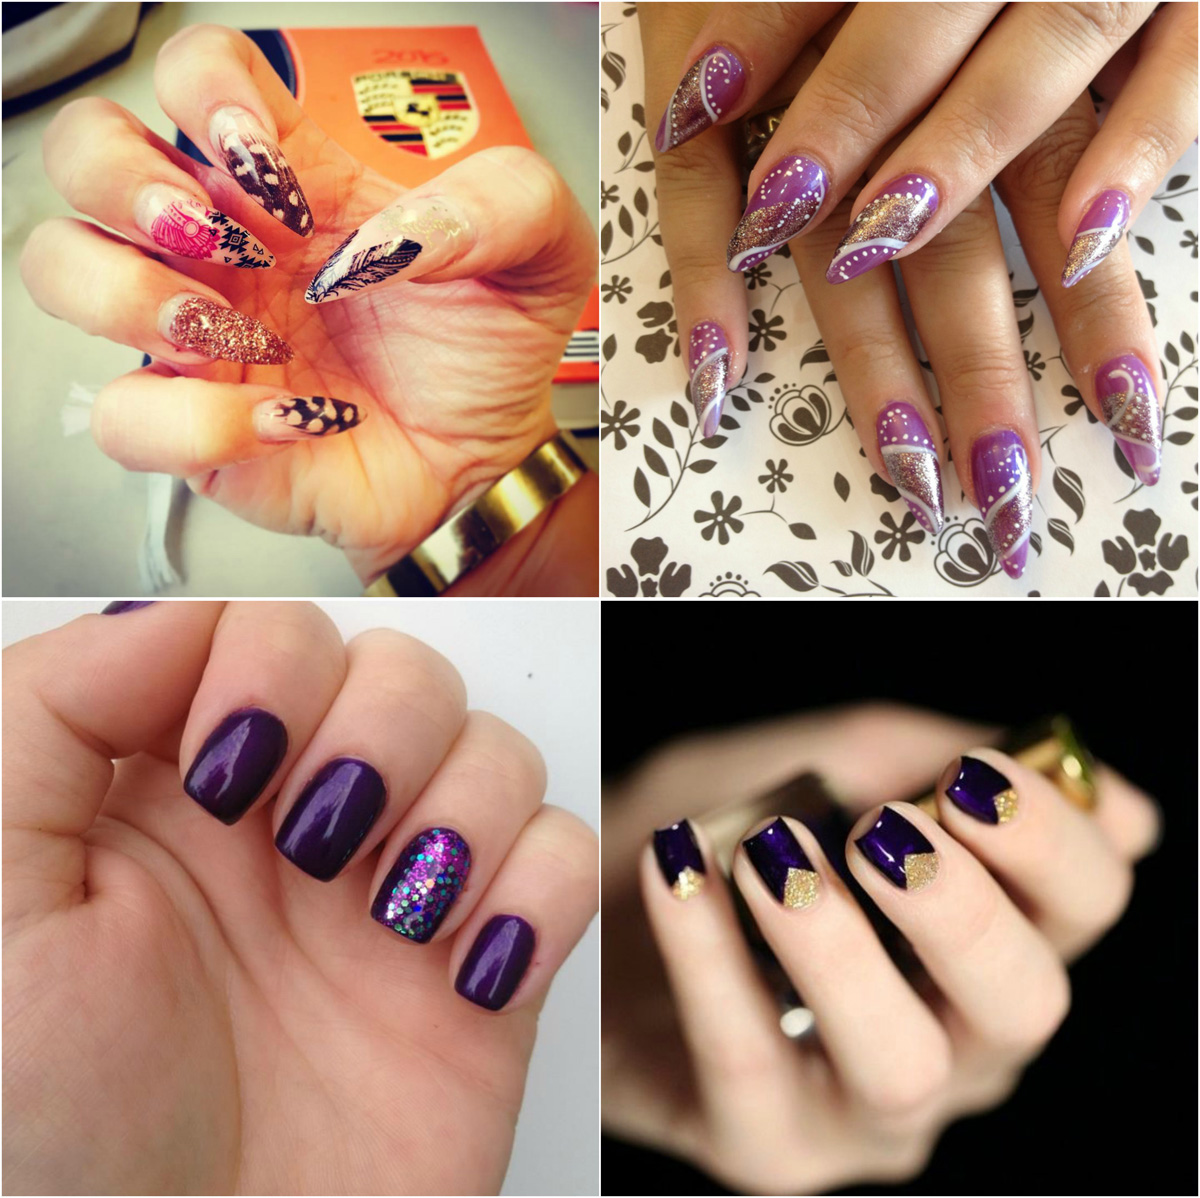 Nail Art | Nail Designs | Nail Makeup Tips | DIY Nail Art - Top ...